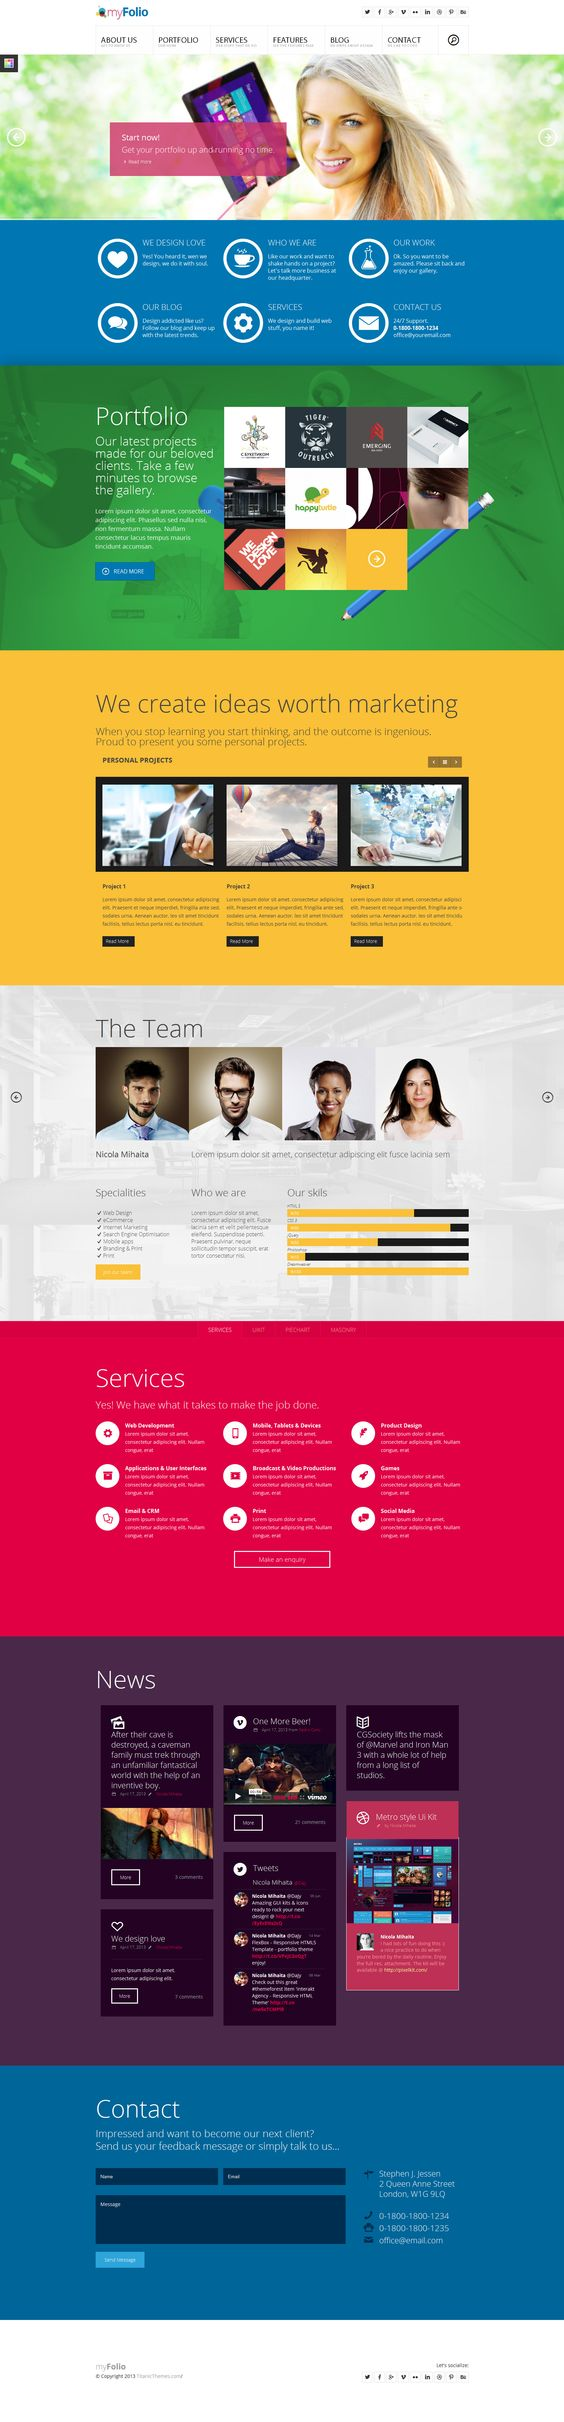 myFolio - Parallax Onepage HTML5 Template by DaJyDesigns ...